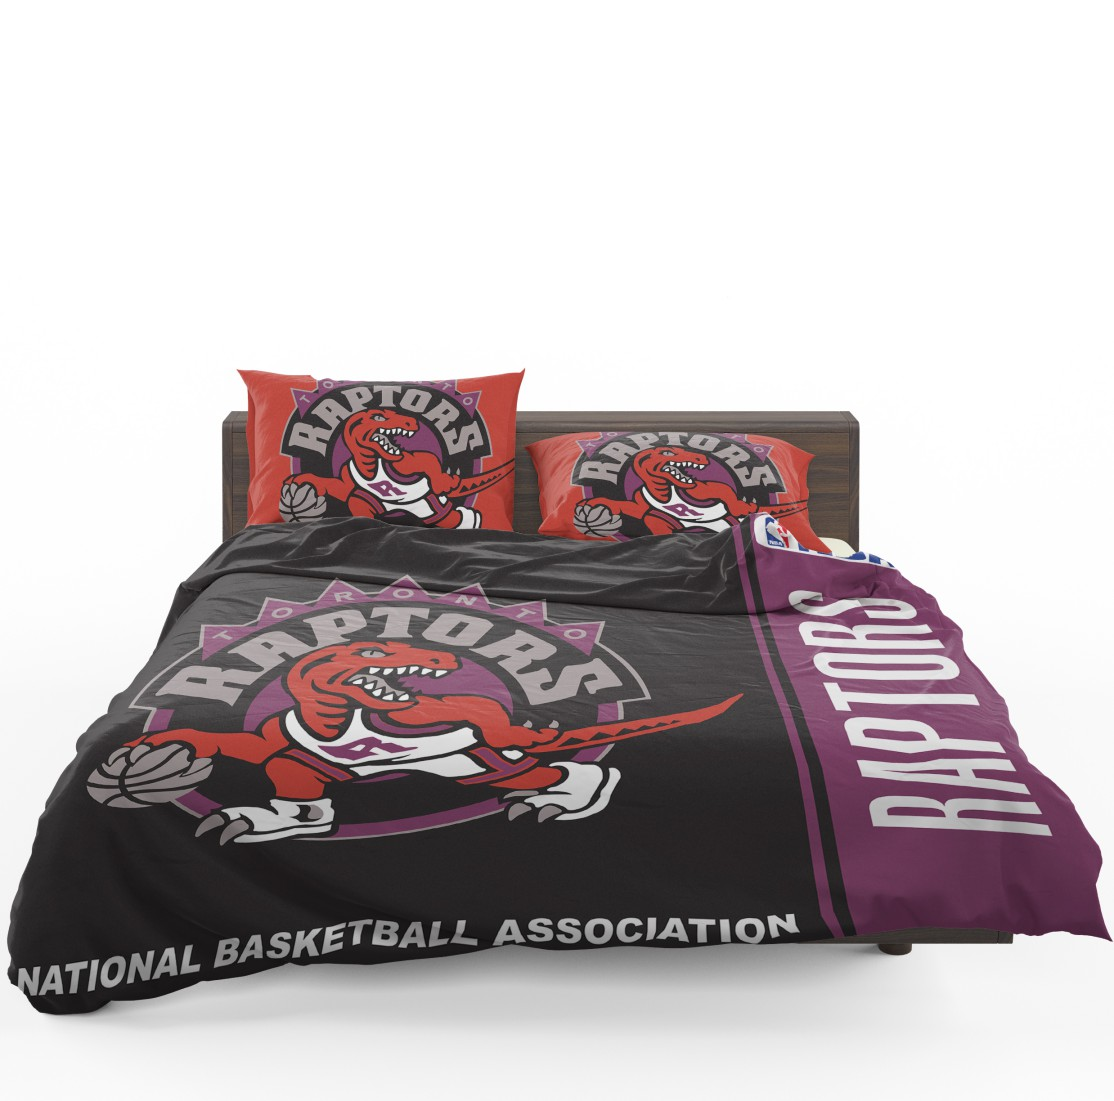 Toronto Raptors Nba Basketball Bedding Set Ebeddingsets